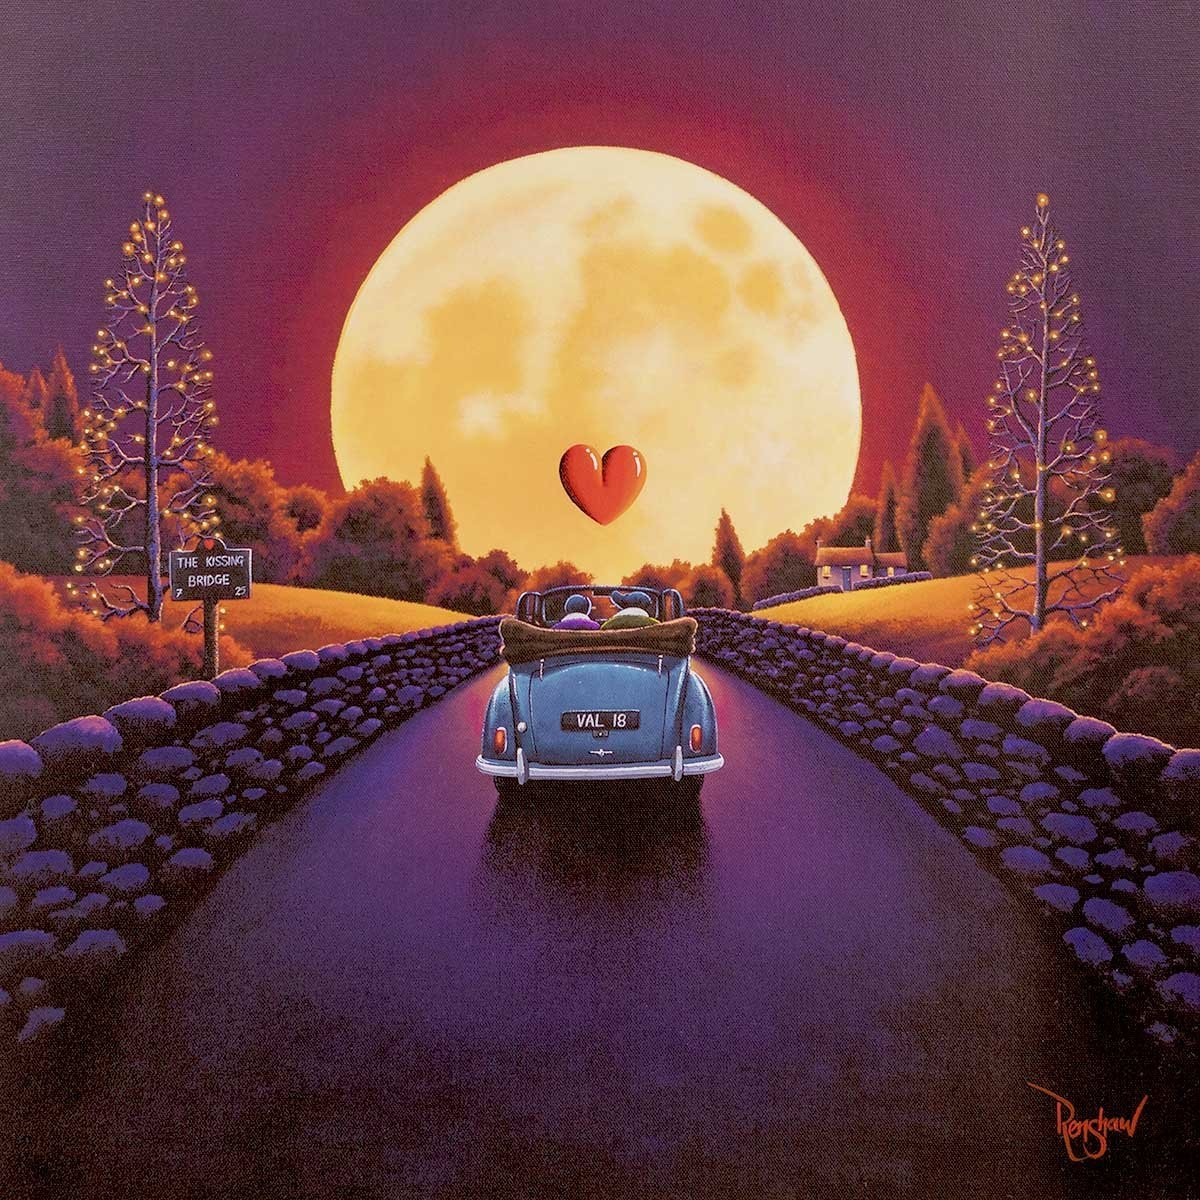 The Kissing Bridge - LAST EDITION David Renshaw